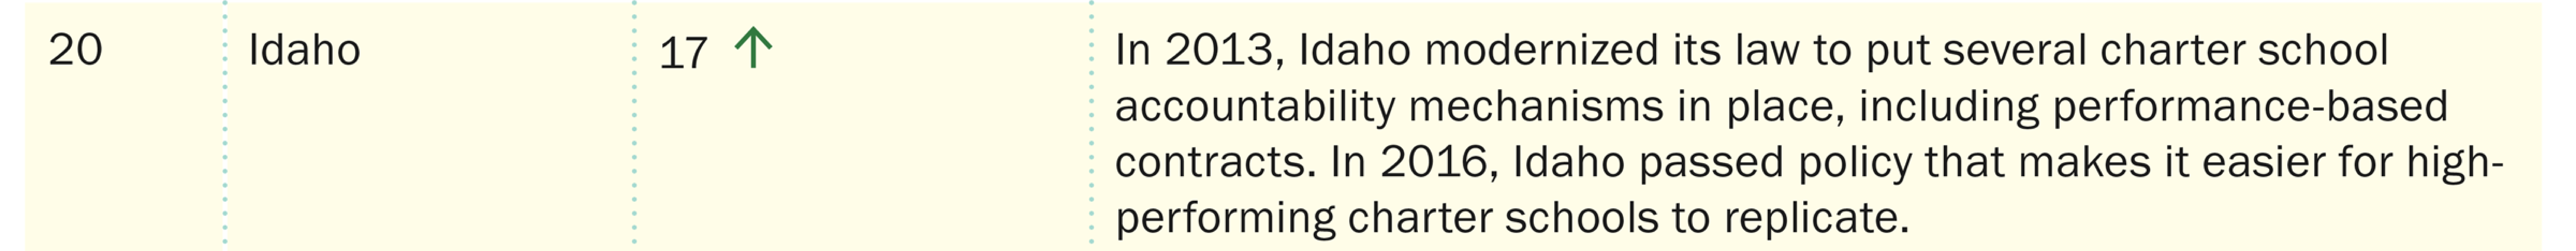 statereport_state-rankings-individual-idaho